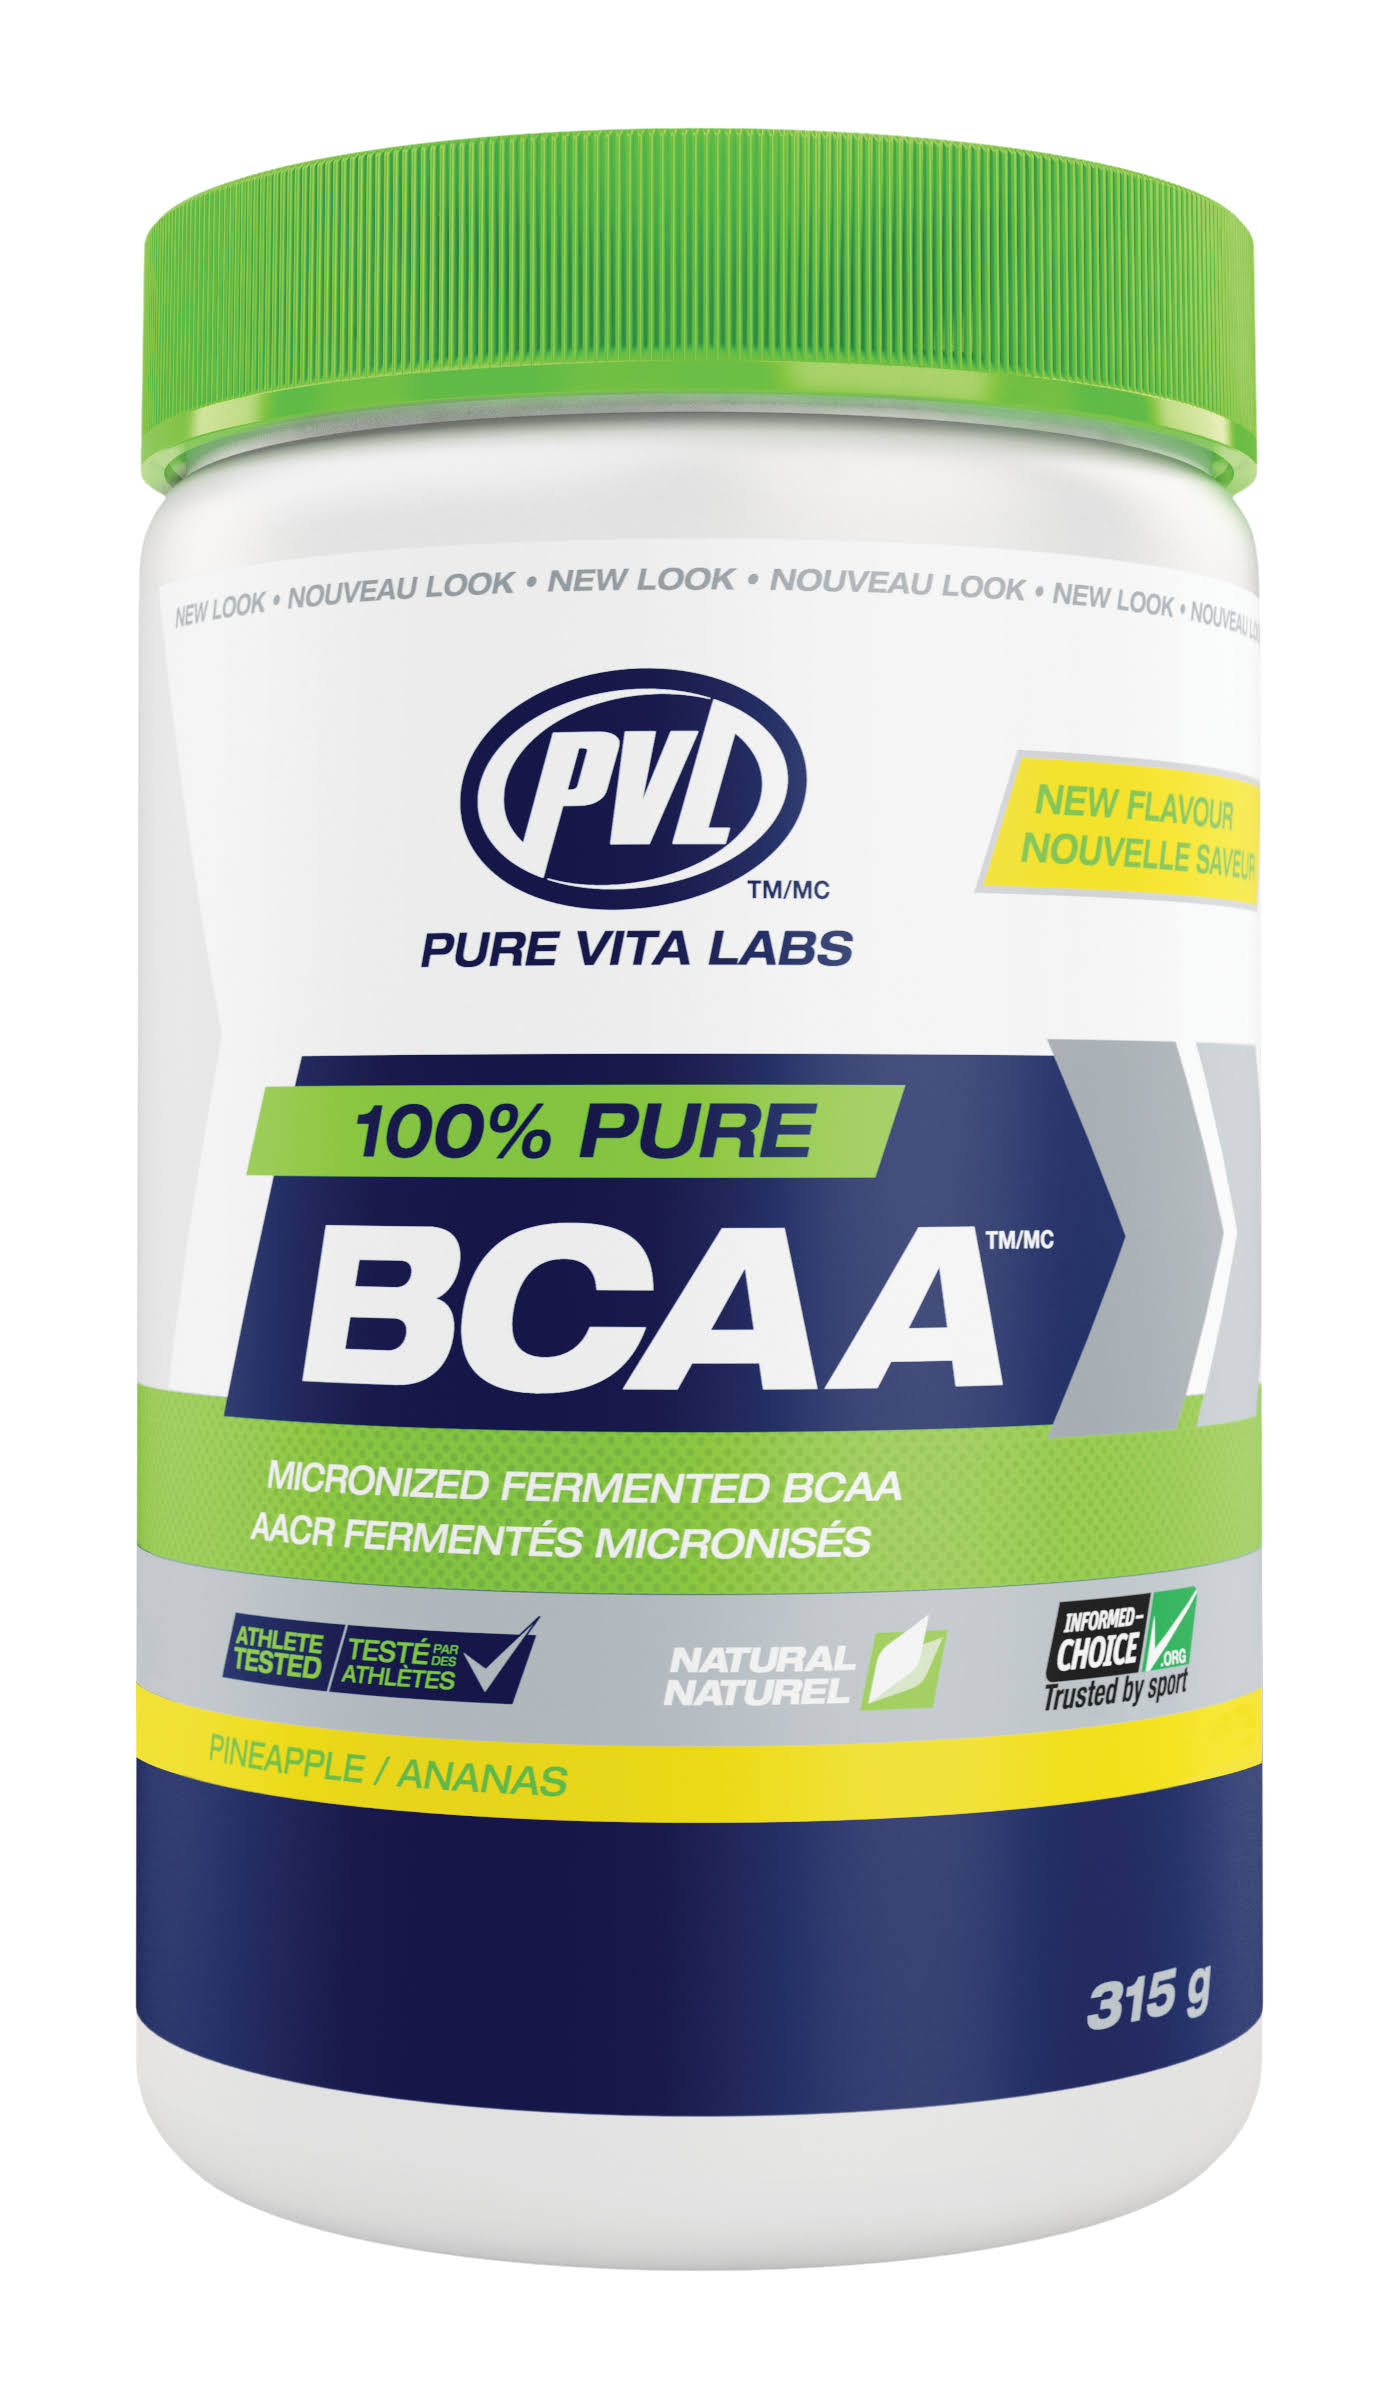 PVL 100% Pure BCAA 315g Pineapple